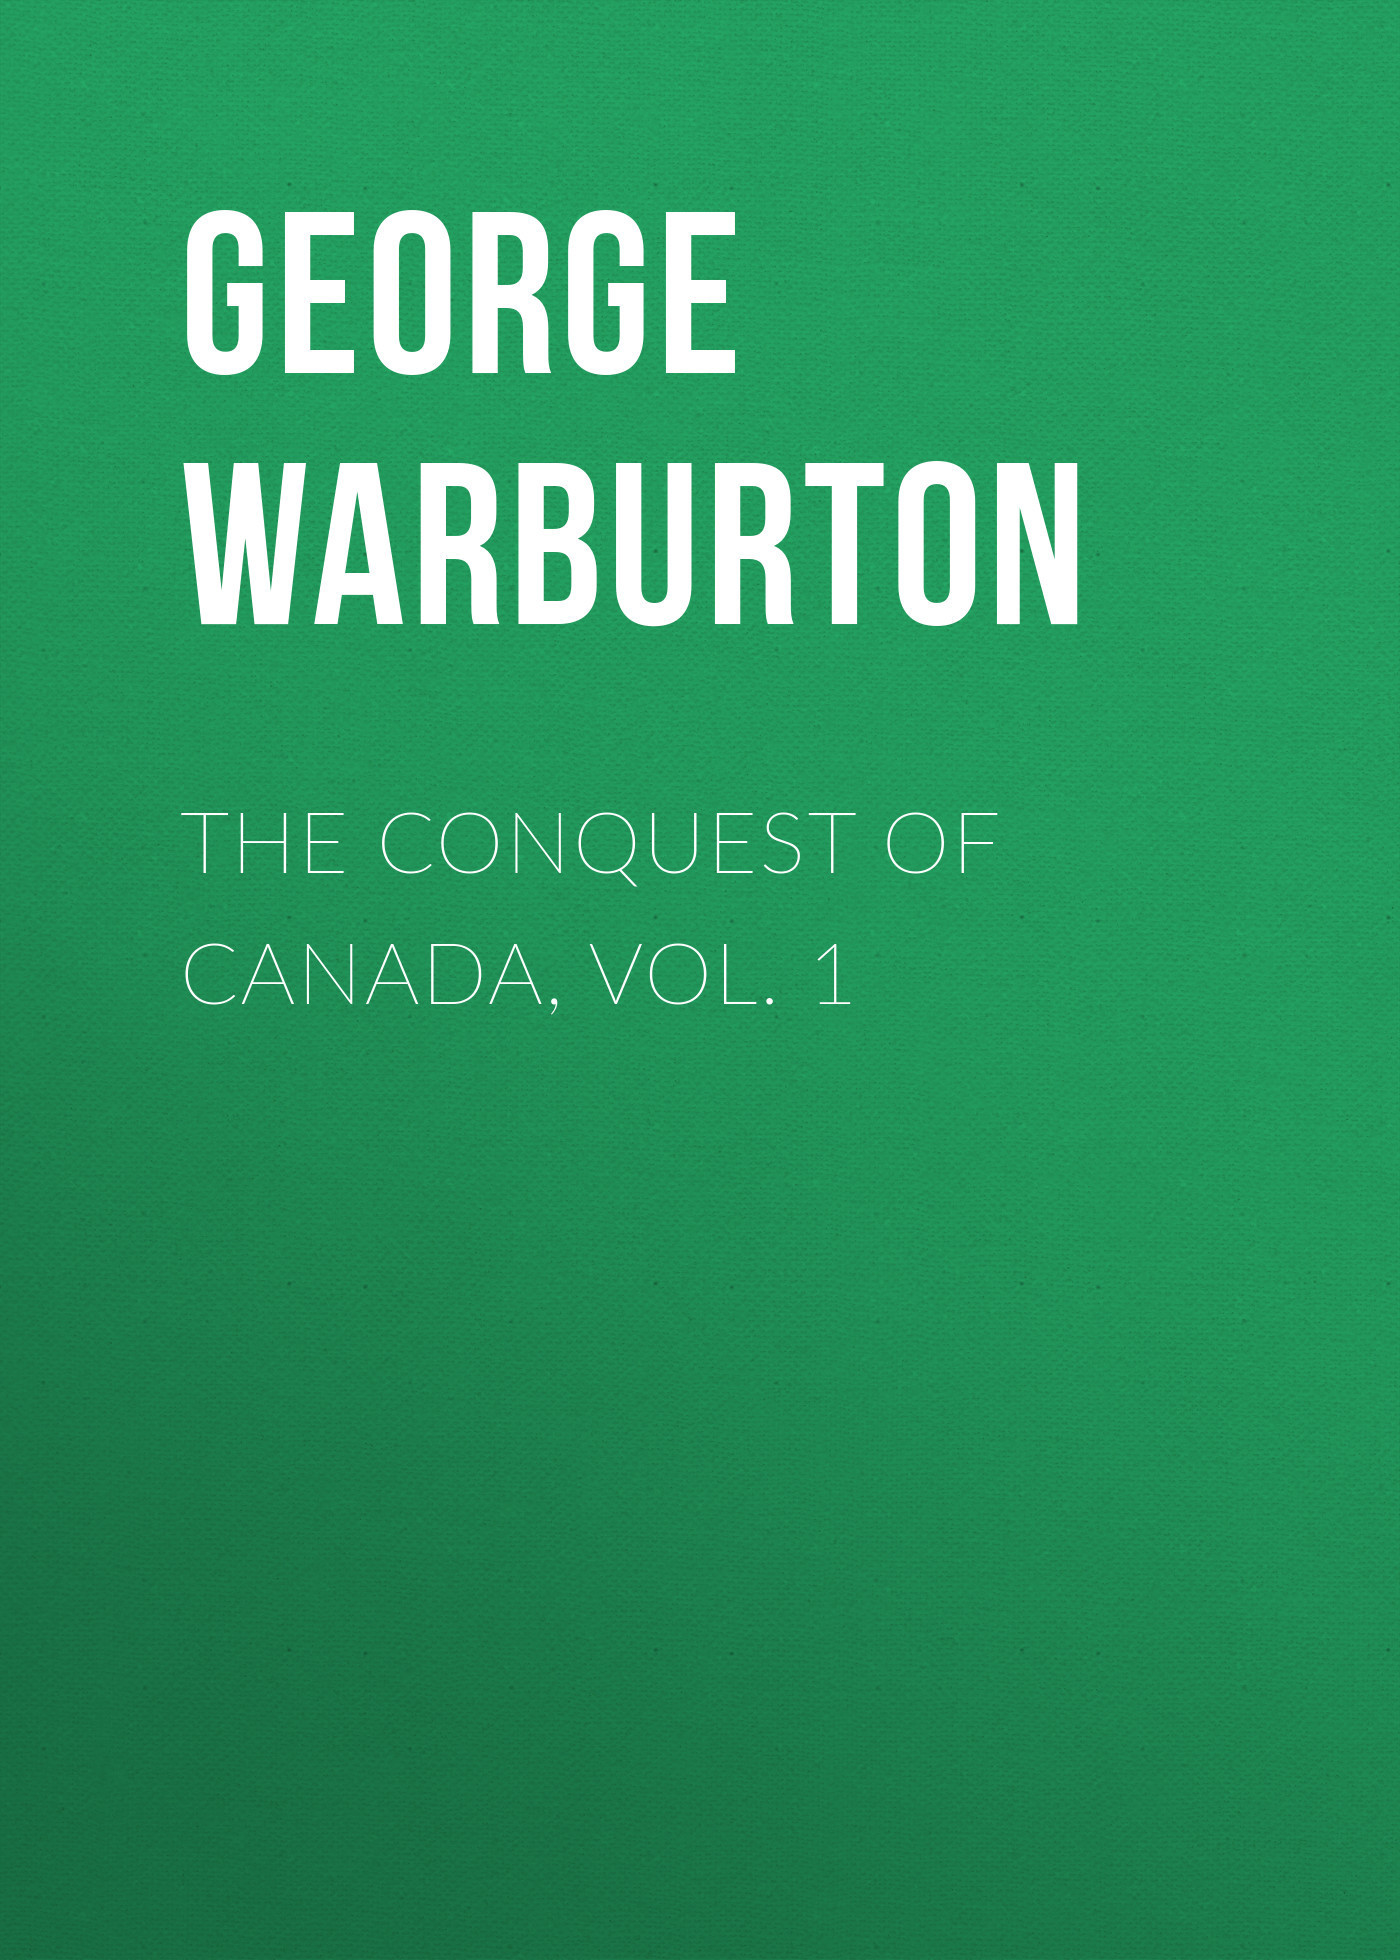 George Warburton The Conquest of Canada, Vol. 1 цена 2017